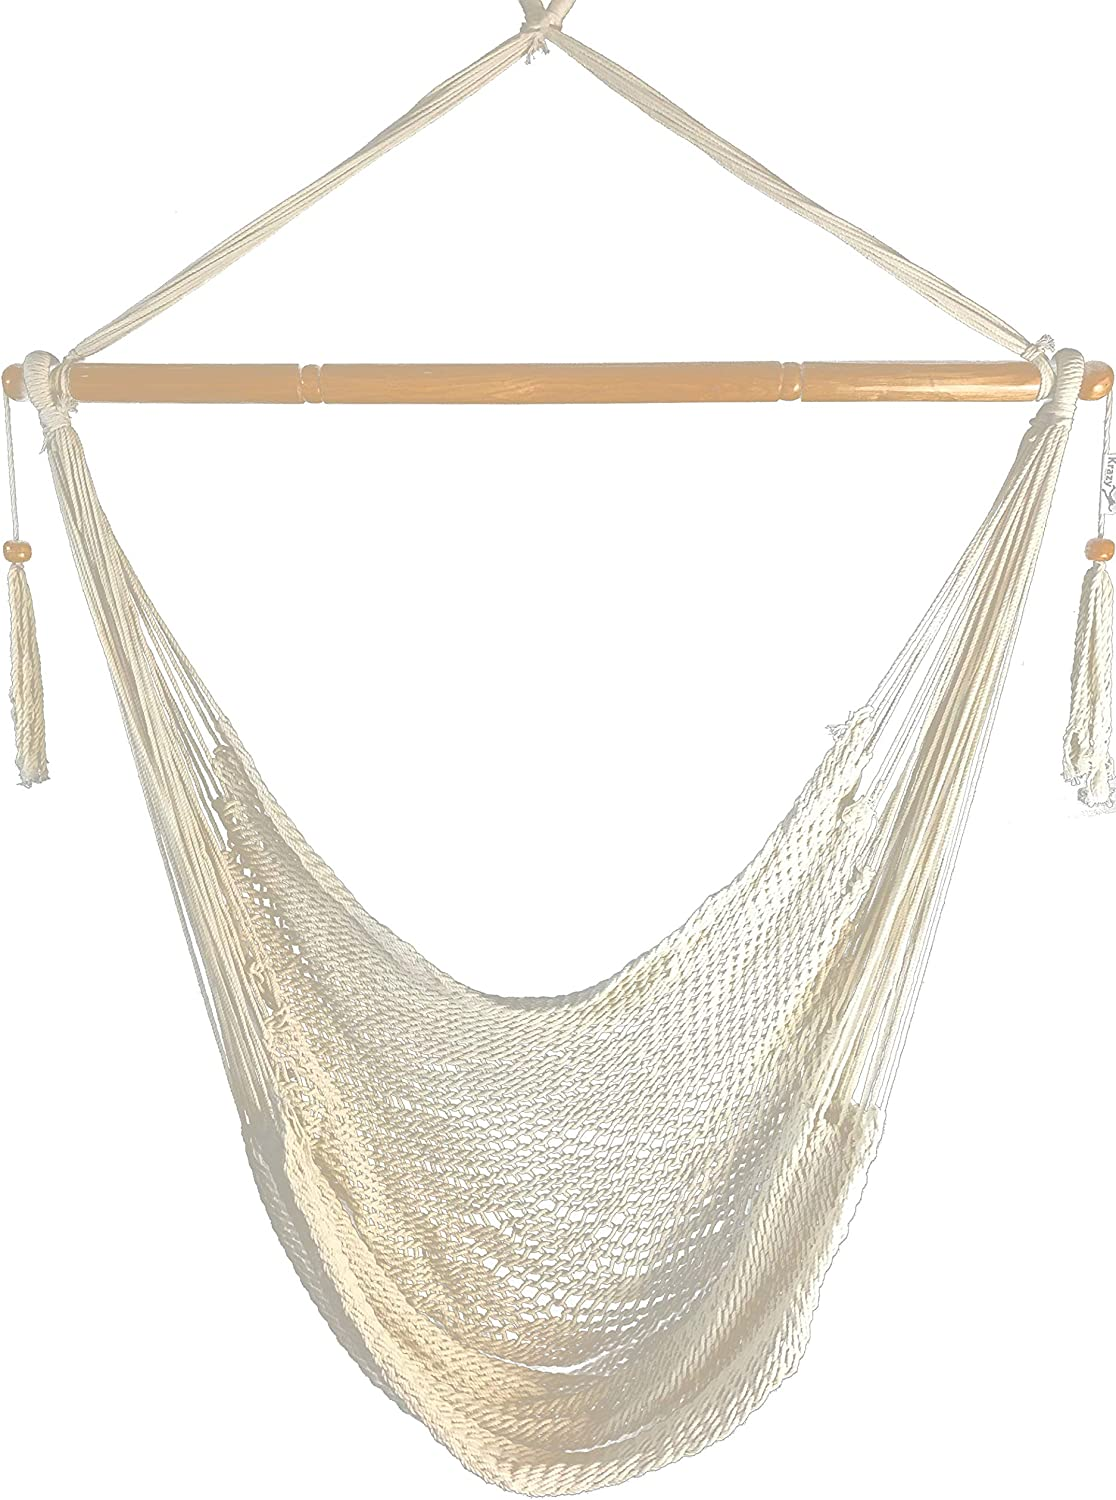 Krazy Outdoors Large Hammock Chair Mayan Style - Natural White - 300 lbs Weight Capacity